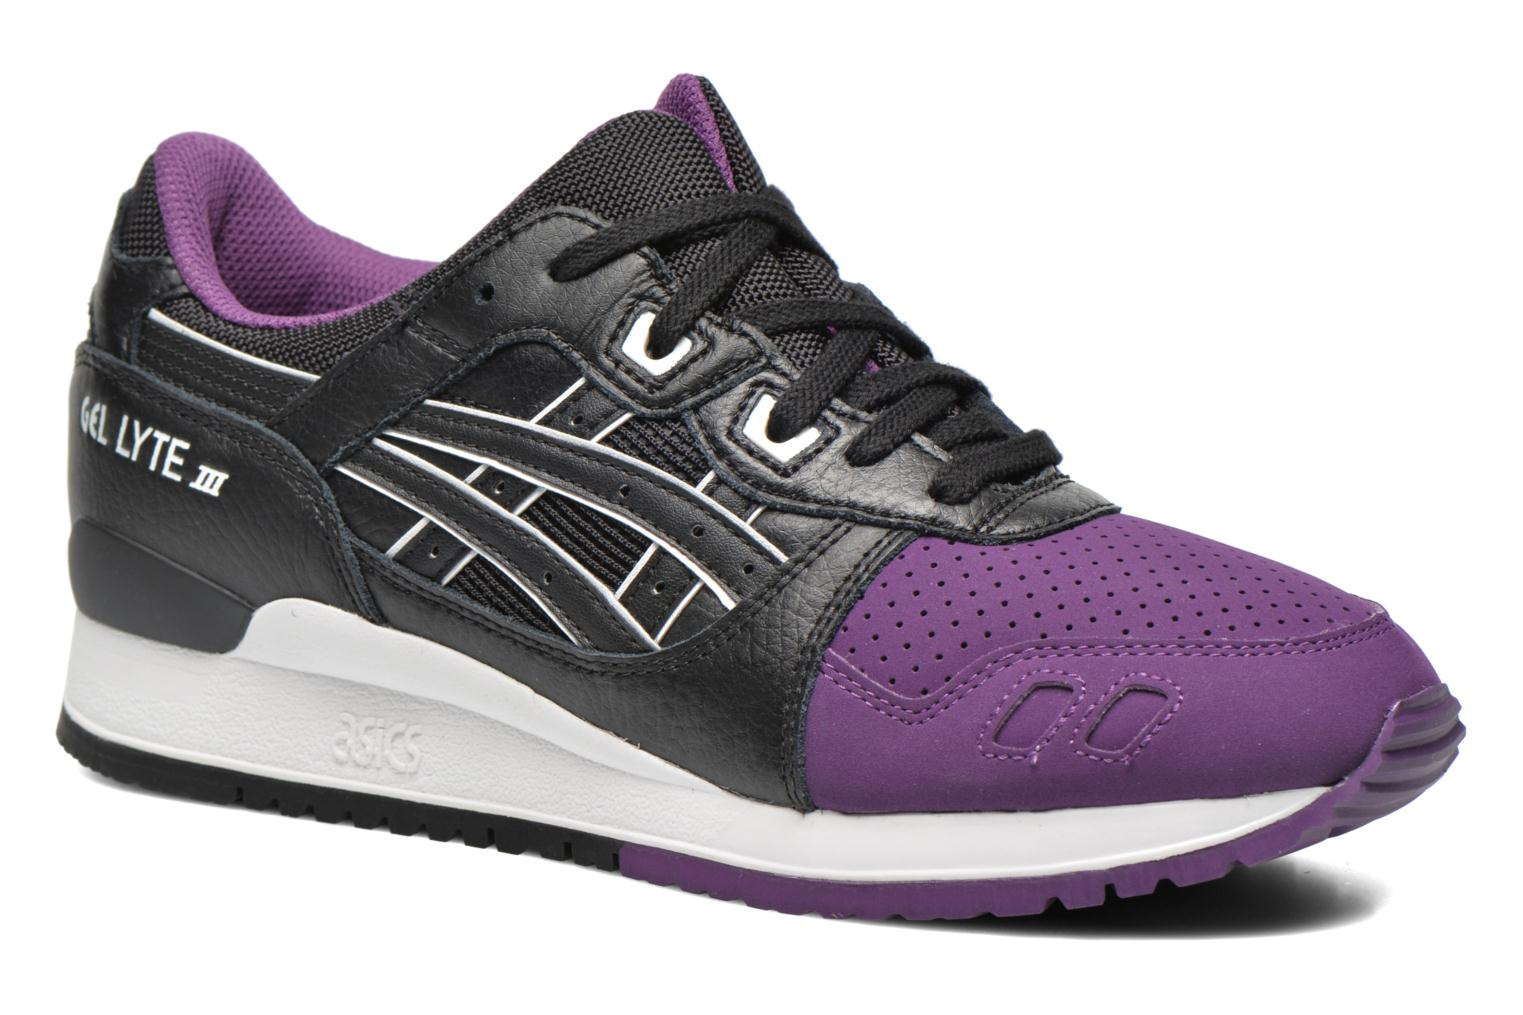 Sneakers Gel-lyte III by Asics